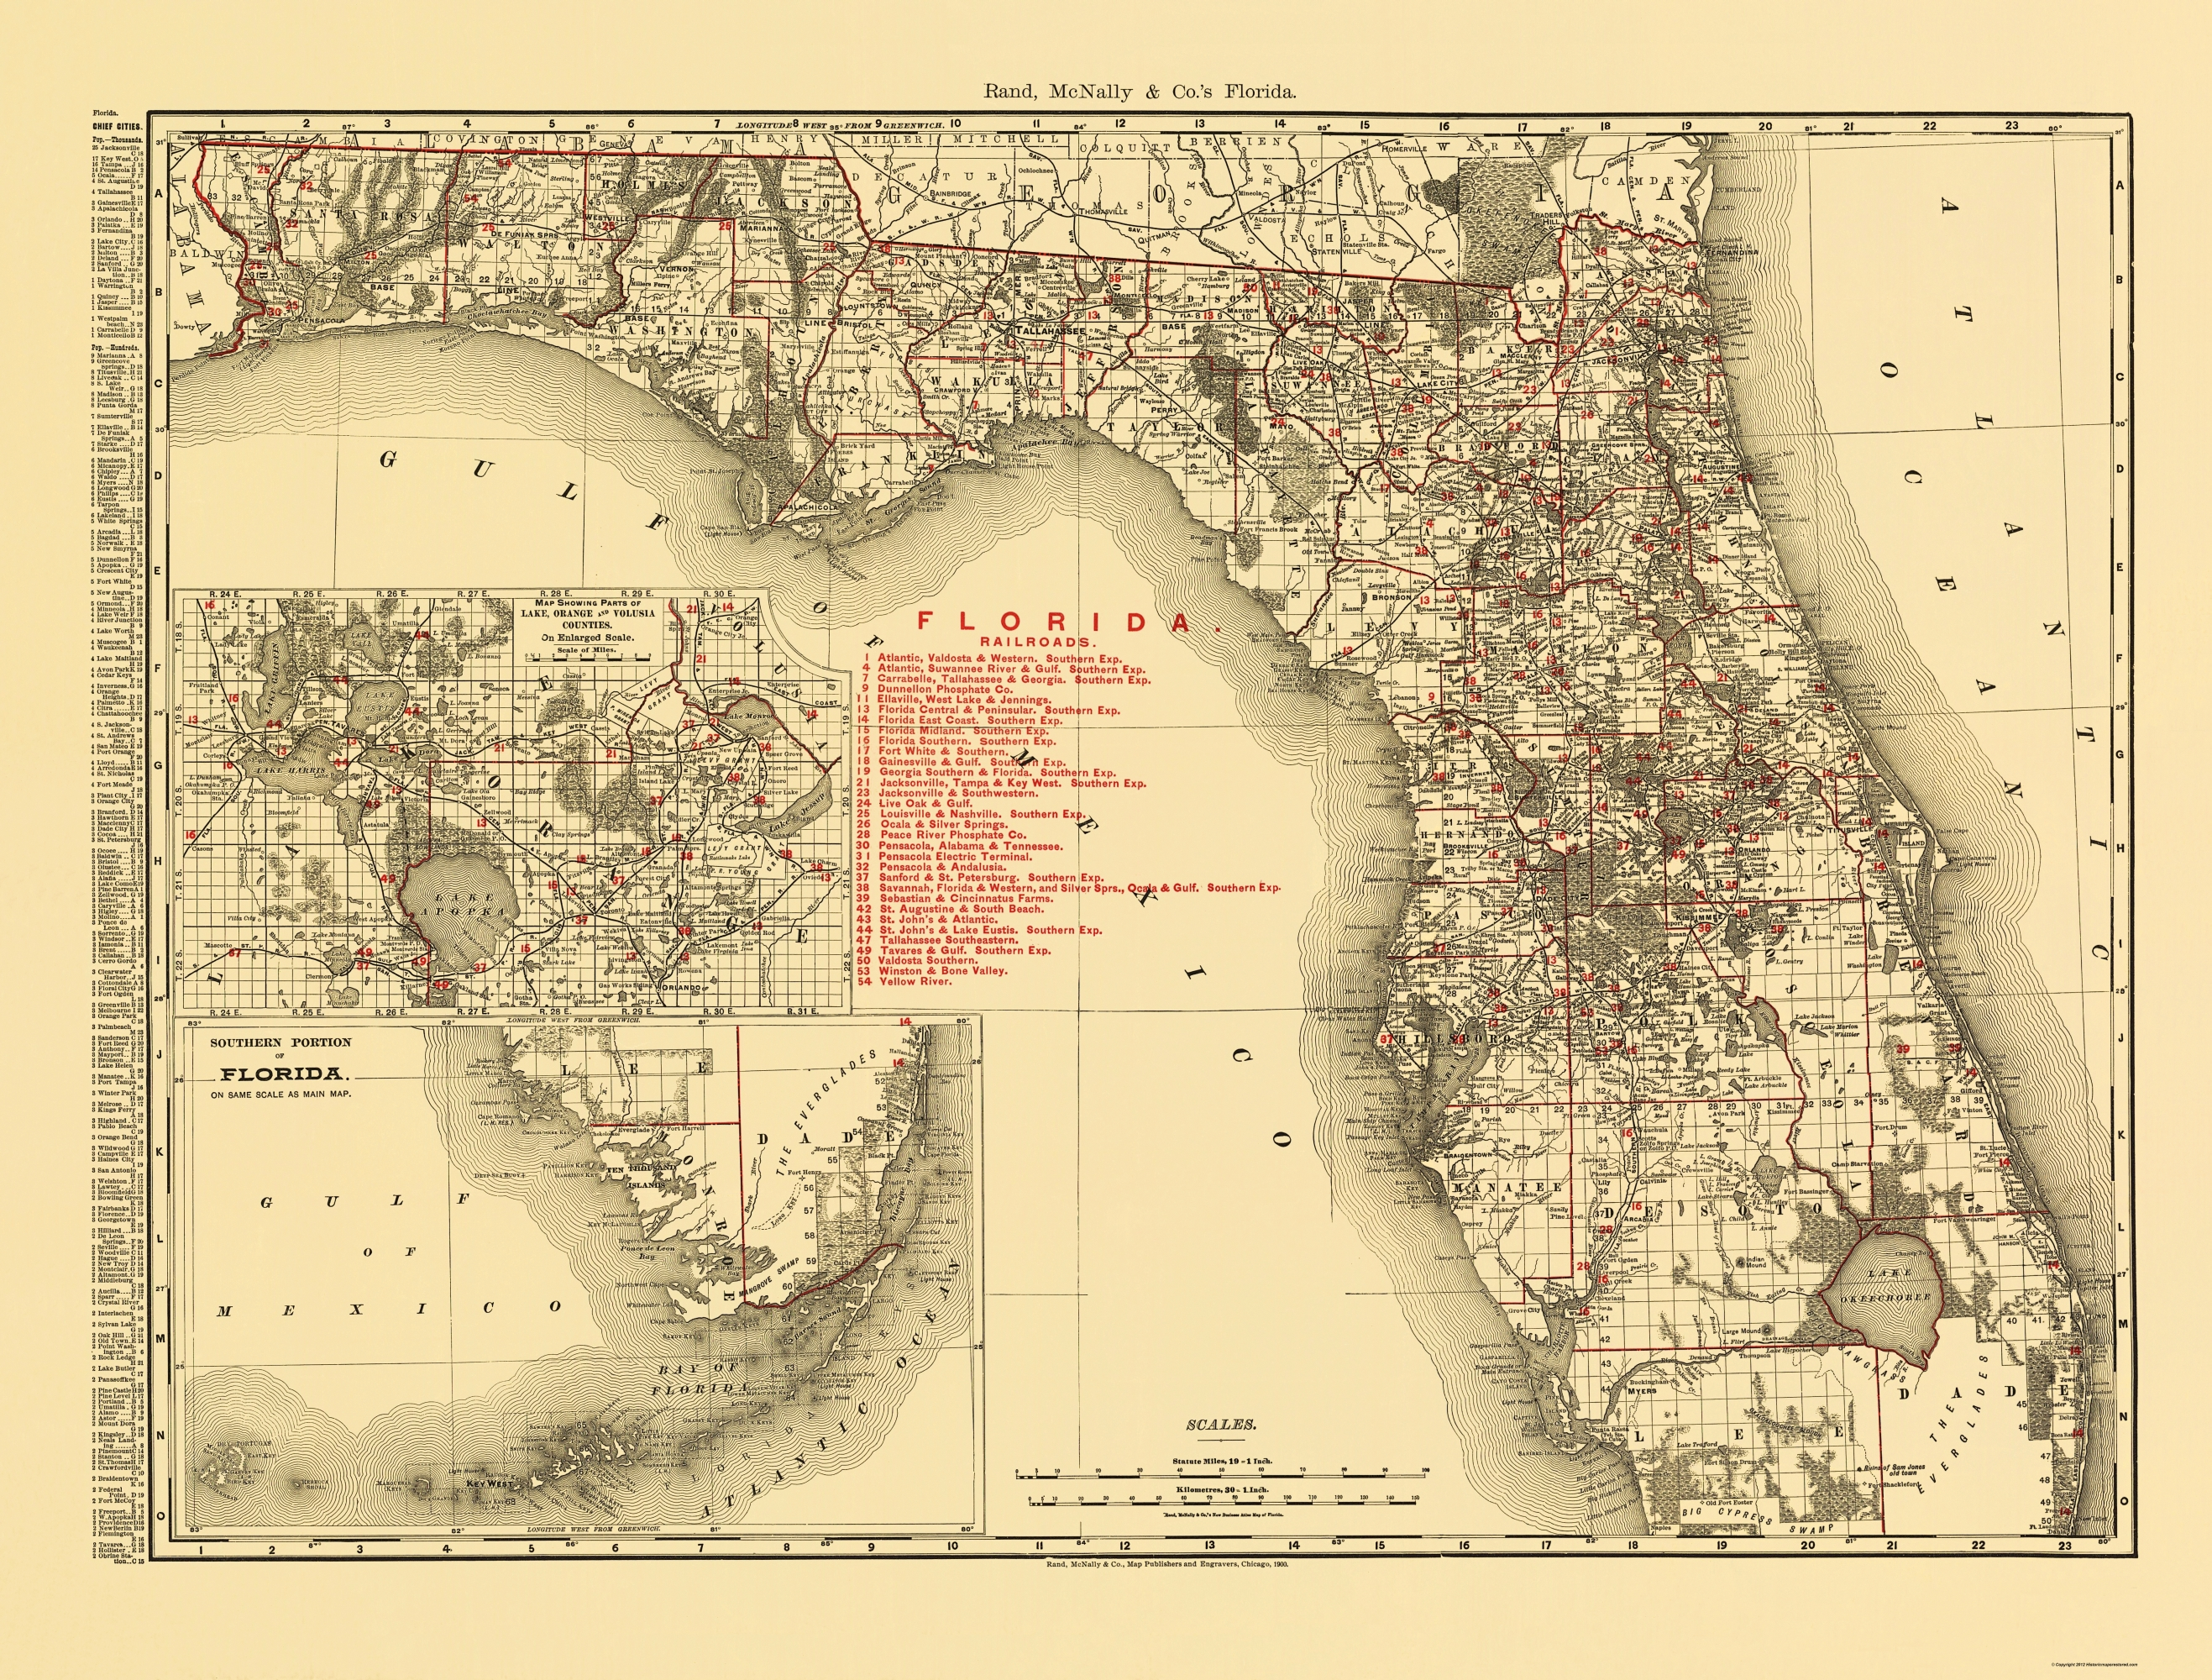 Full Map Of Florida.Old State Map Florida Rand Mcnally 1900 23 X 30 30